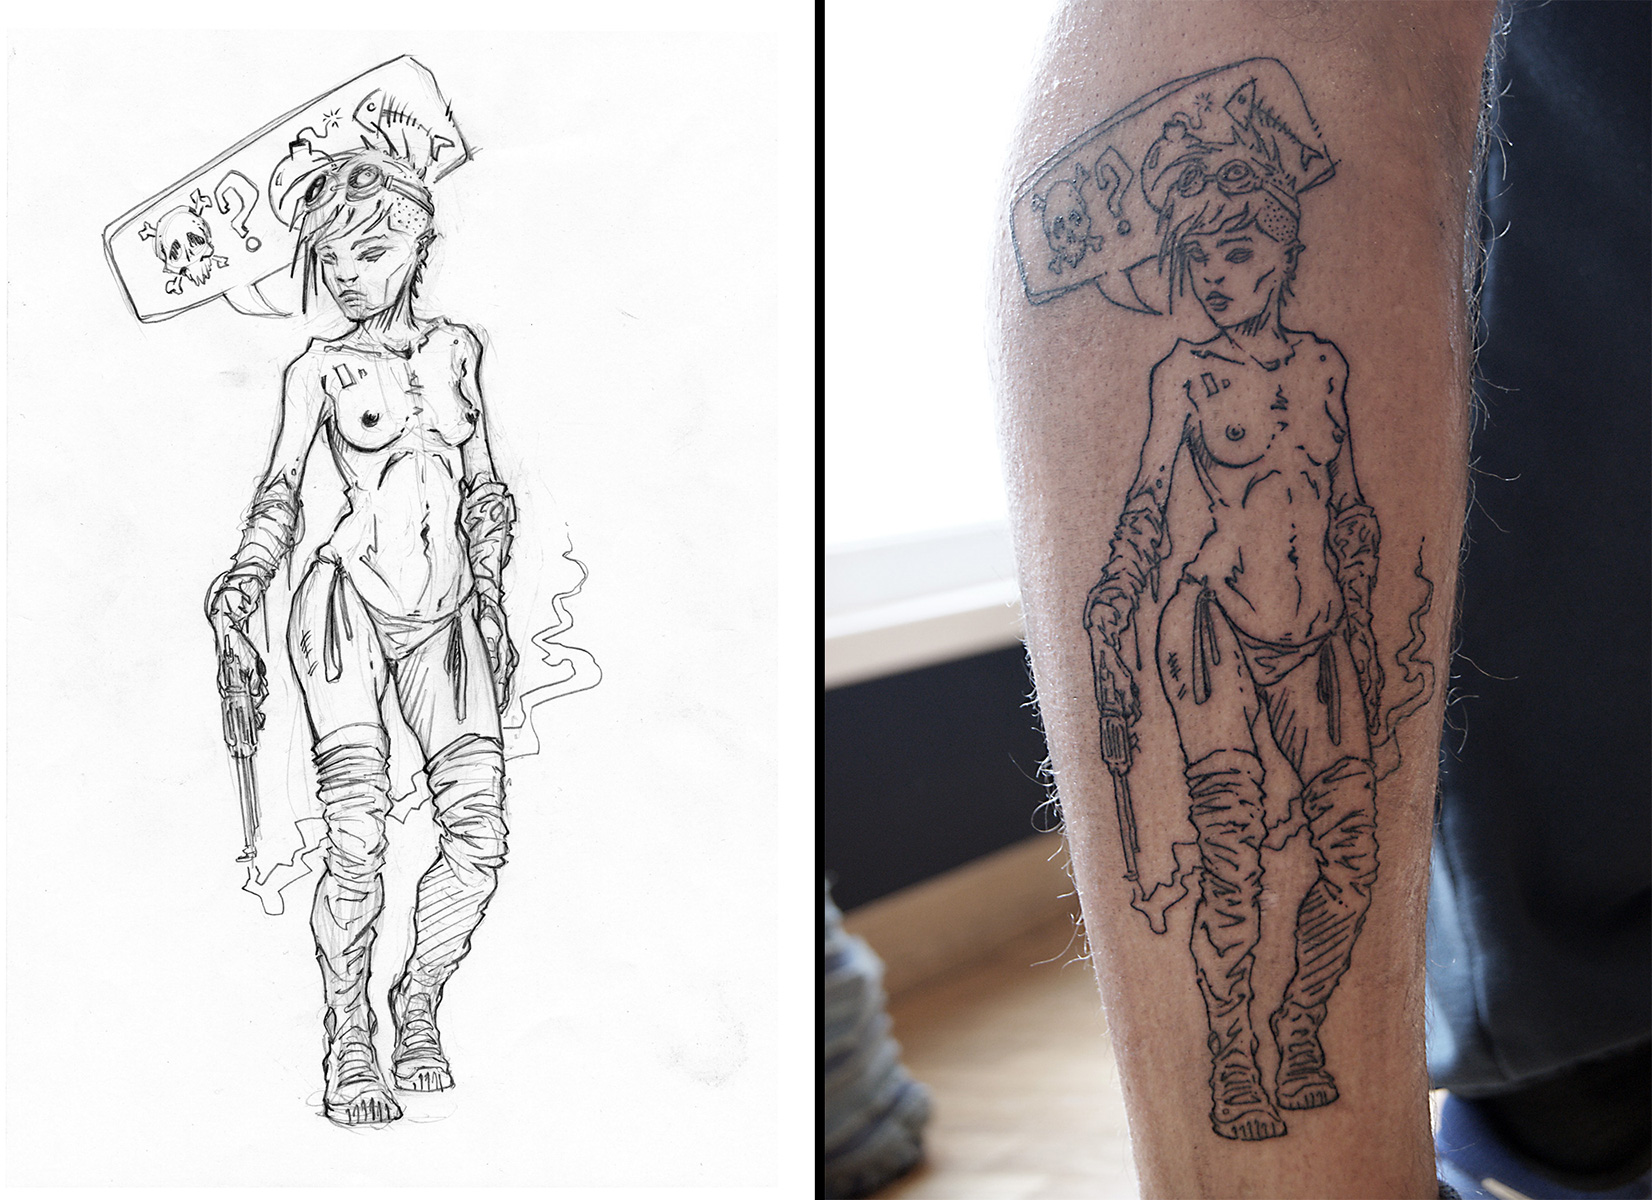 DeodatusDesign_Punk_Girl_Tattoo_2016